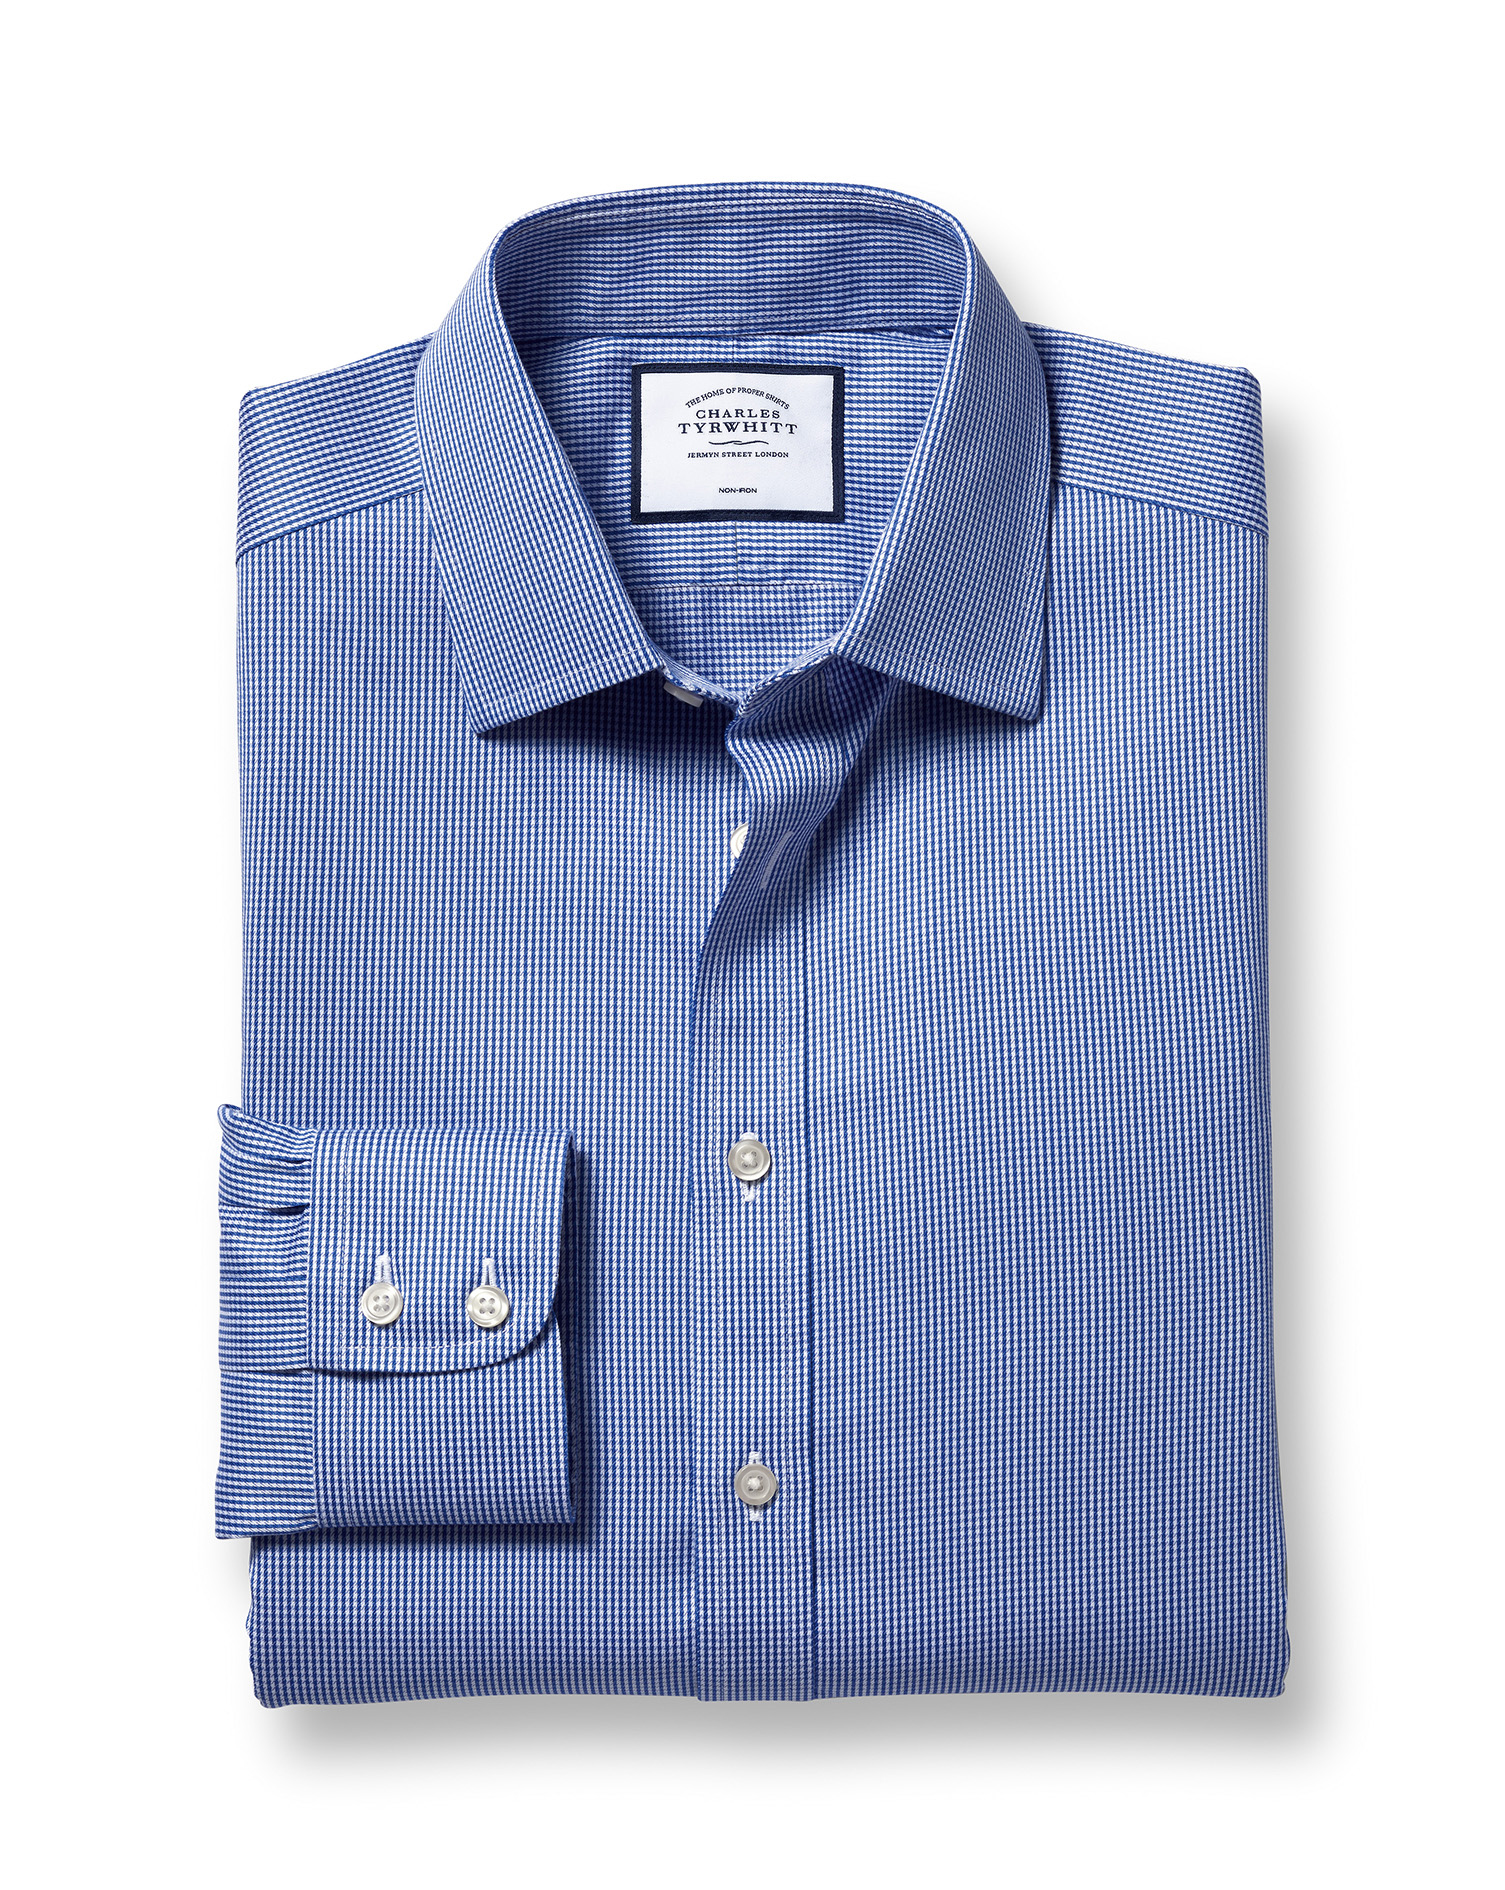 Slim Fit Non-Iron Puppytooth Royal Blue Cotton Formal Shirt Single Cuff Size 17.5/38 by Charles Tyrw